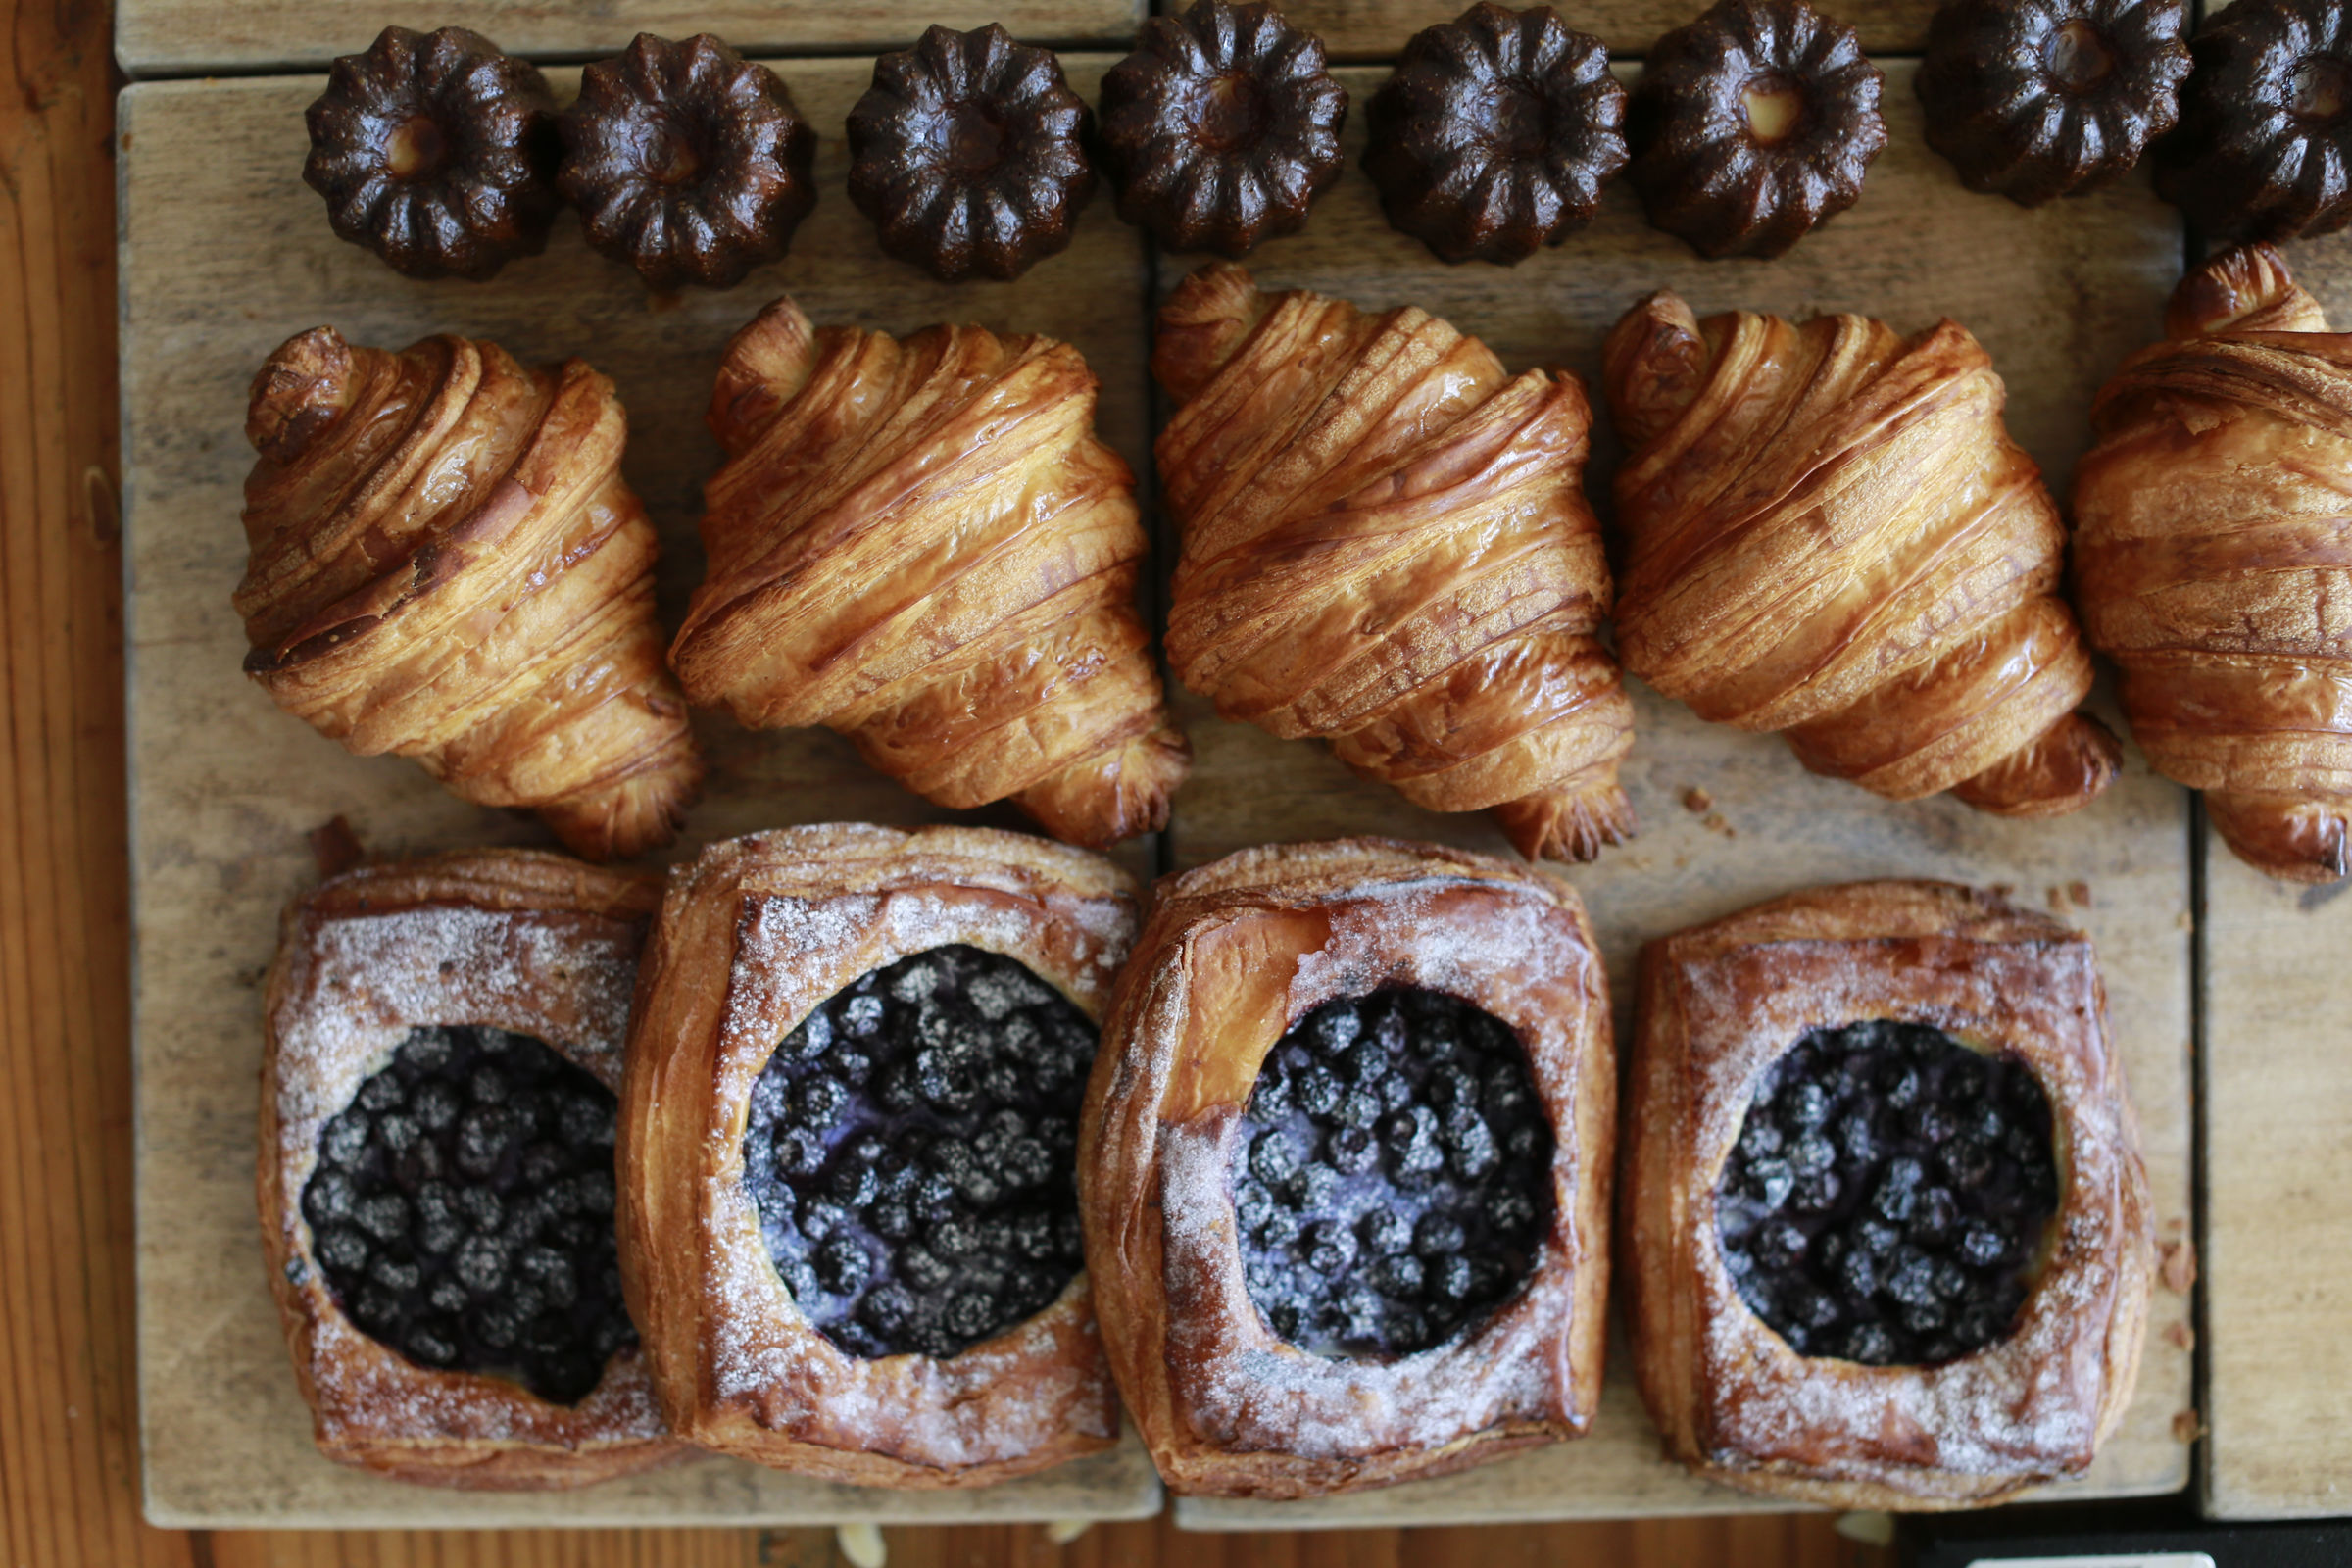 Vanilla bean canele, croissant and the local blueberry tart with vanilla cream at Malvern Buttery.